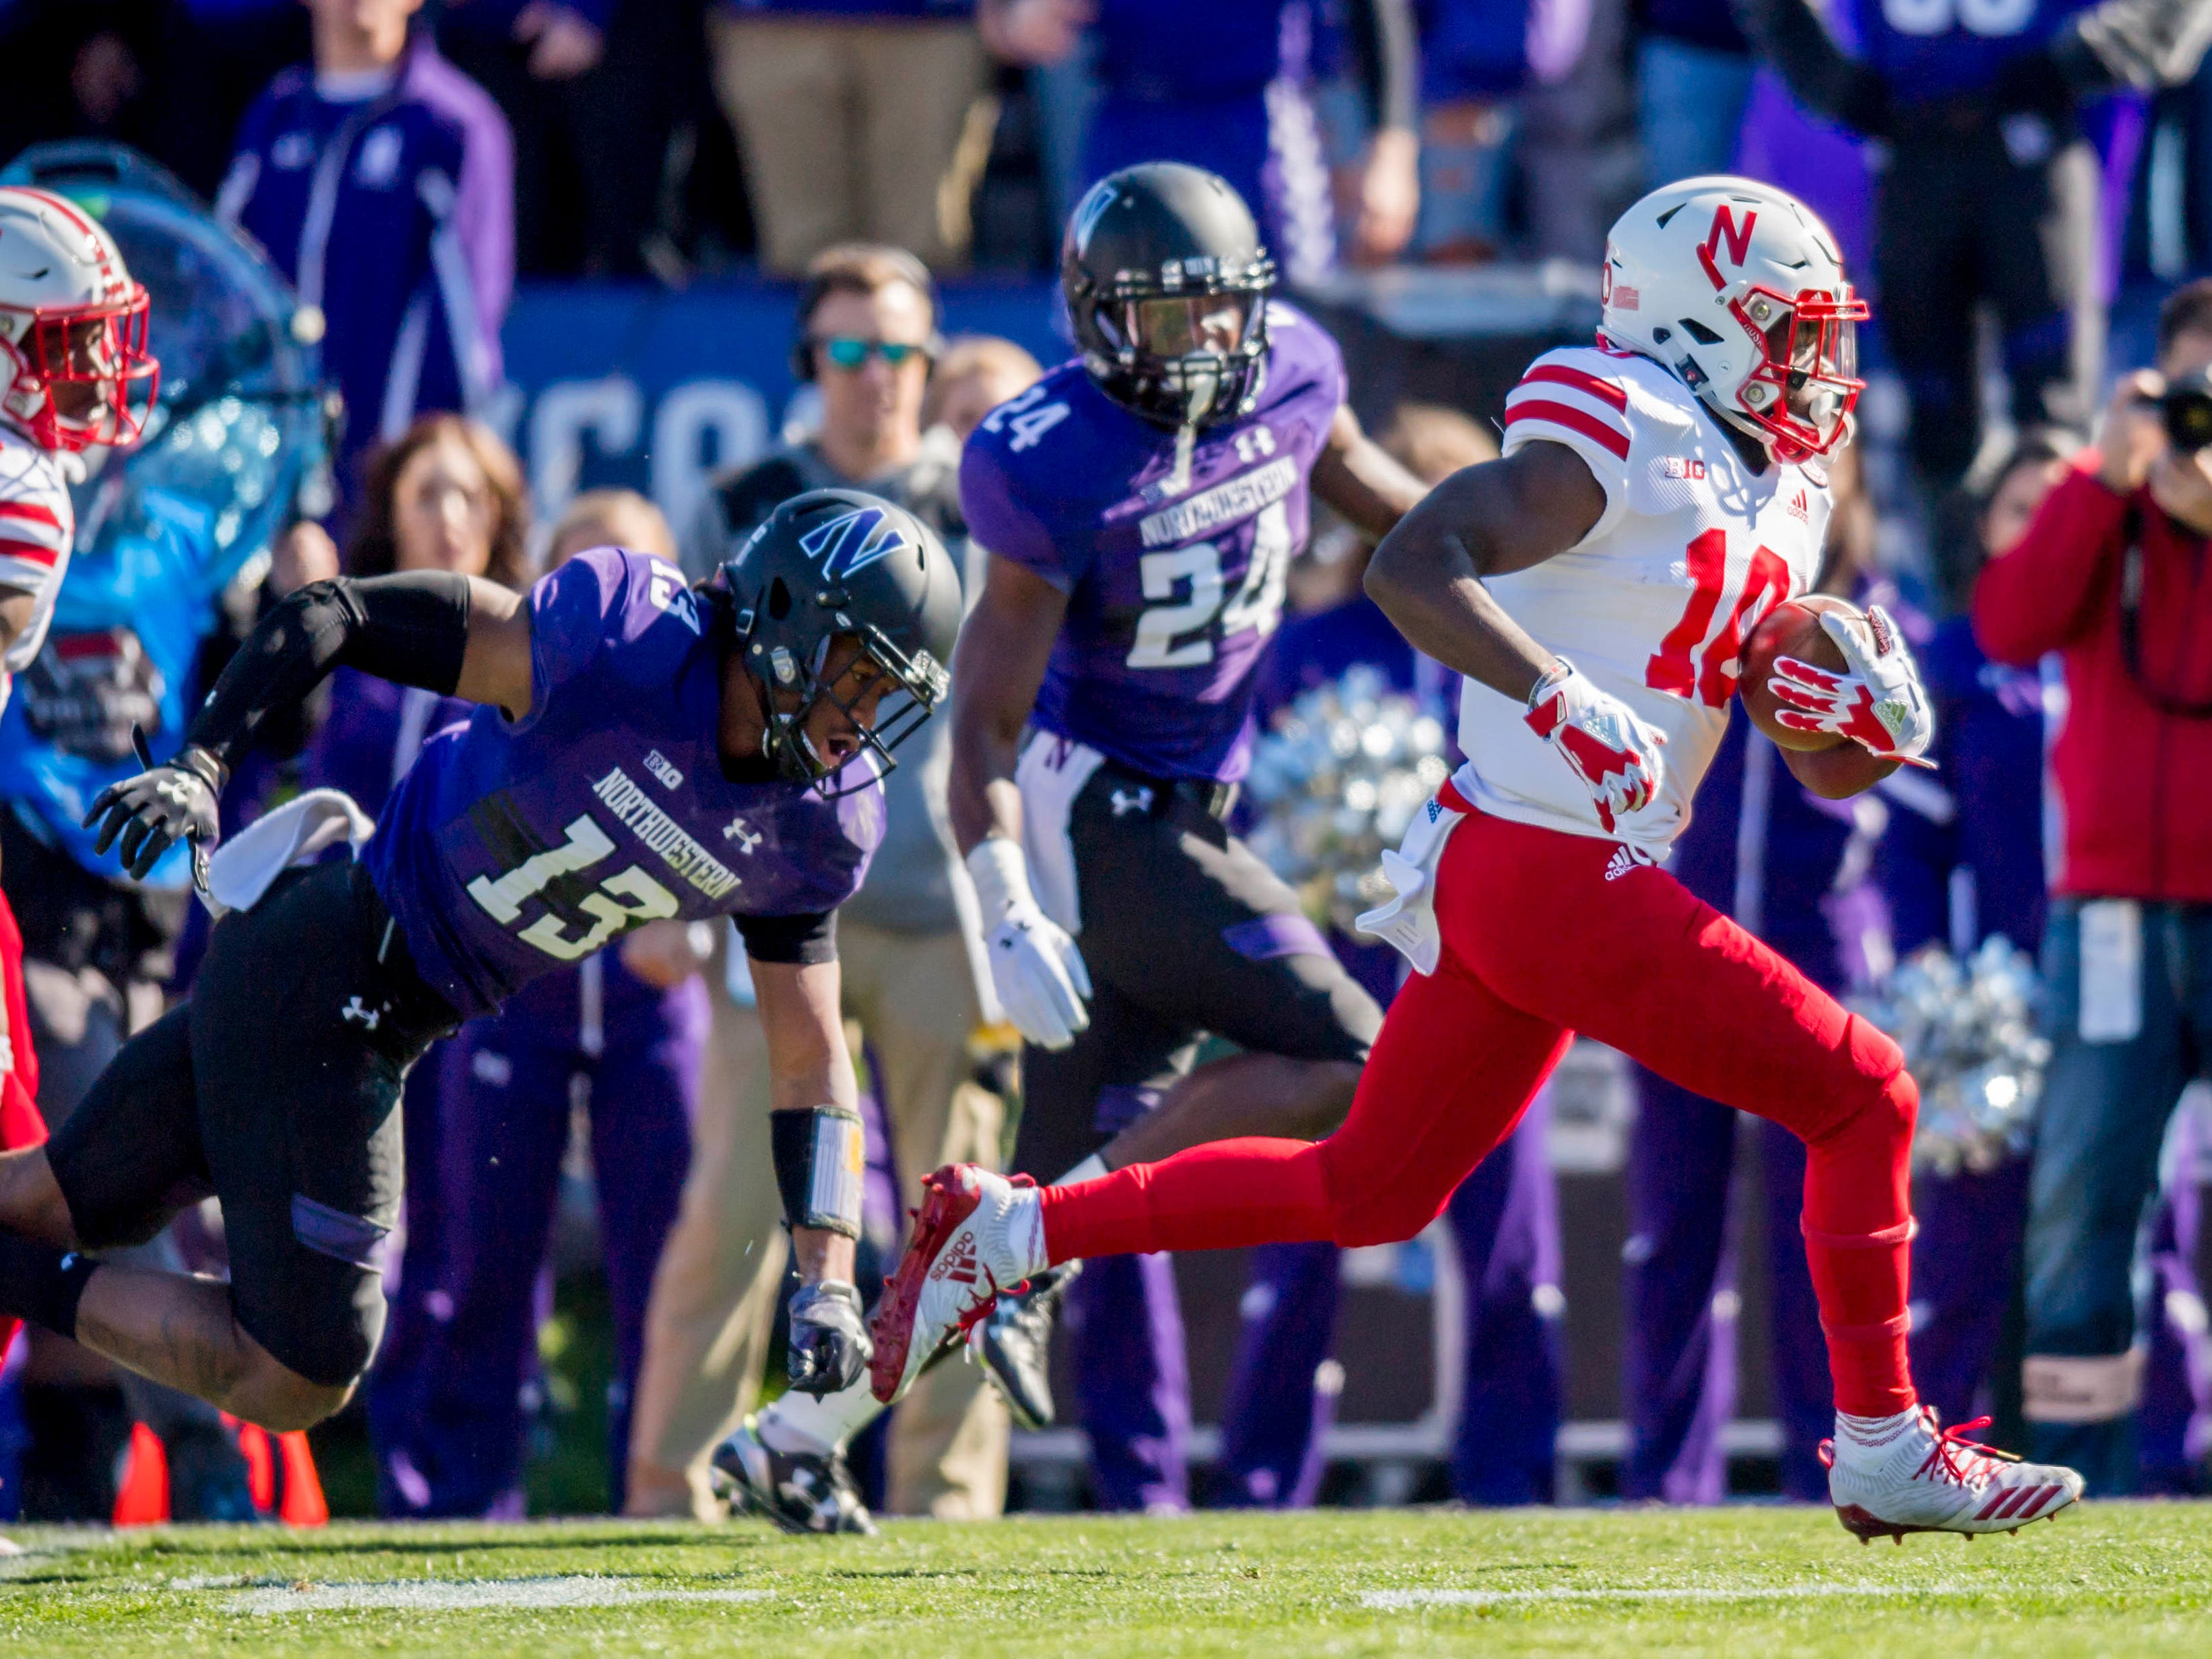 Nebraska wide receiver JD Spielman breaks free from the Northwestern defense to score a touchdown in the first half.